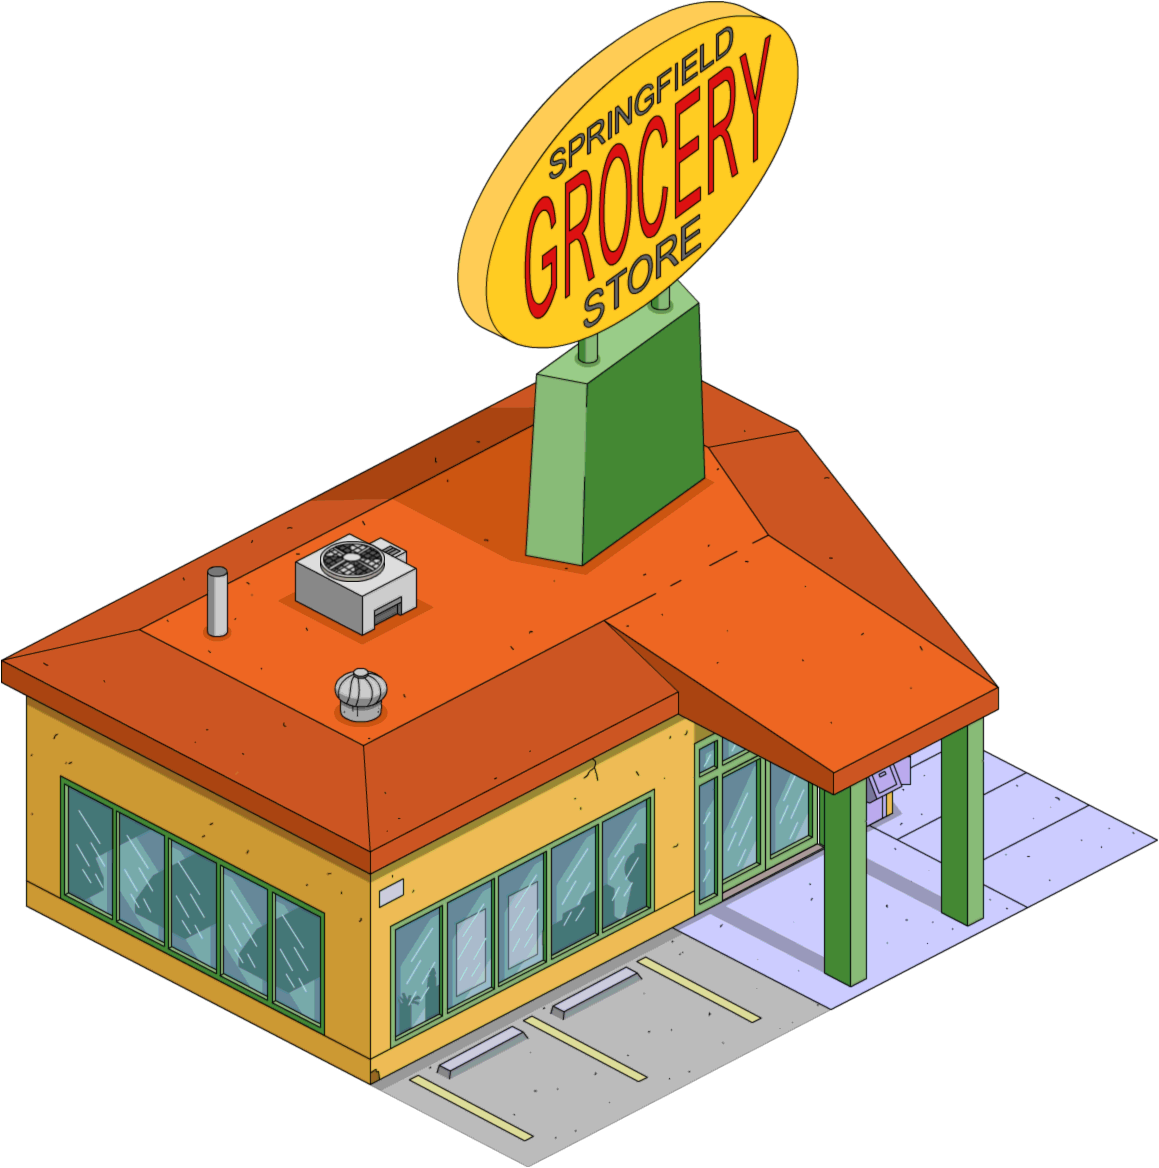 1159x1168 Springfield Grocery Store The Simpsons Tapped Out Wiki Fandom